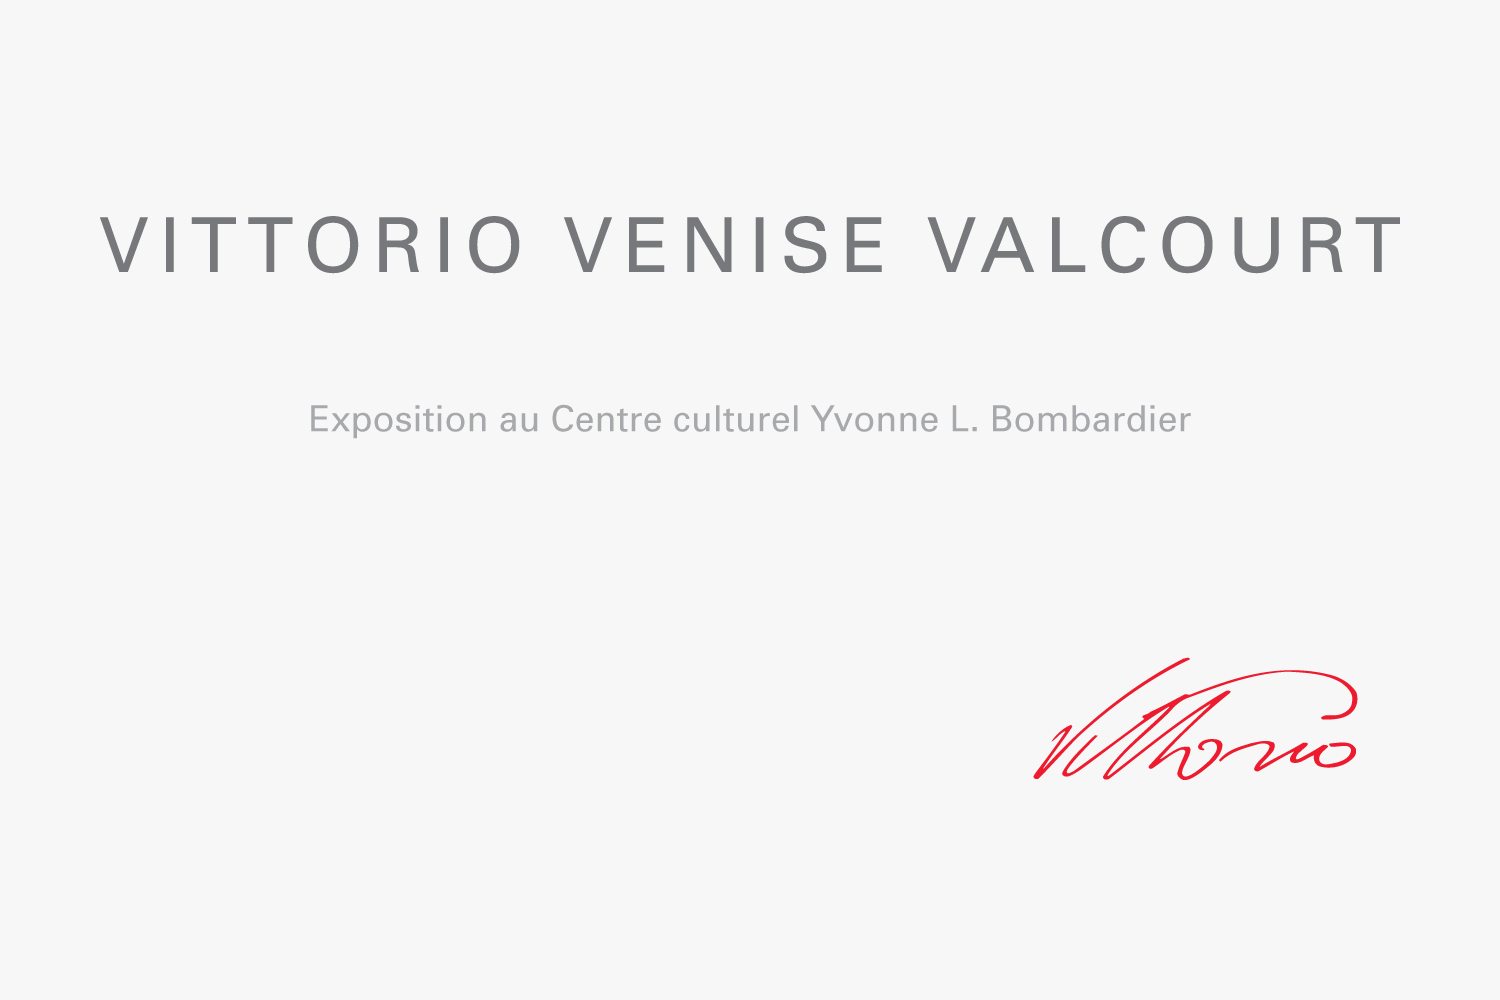 VITTORIO VENISE VALCOURT – Exhibition by Fondation J. A. Bombardier – Editorial design, Copywriting & Typography by Isabelle Robida – Infrarouge [Design & Culture] – 2001